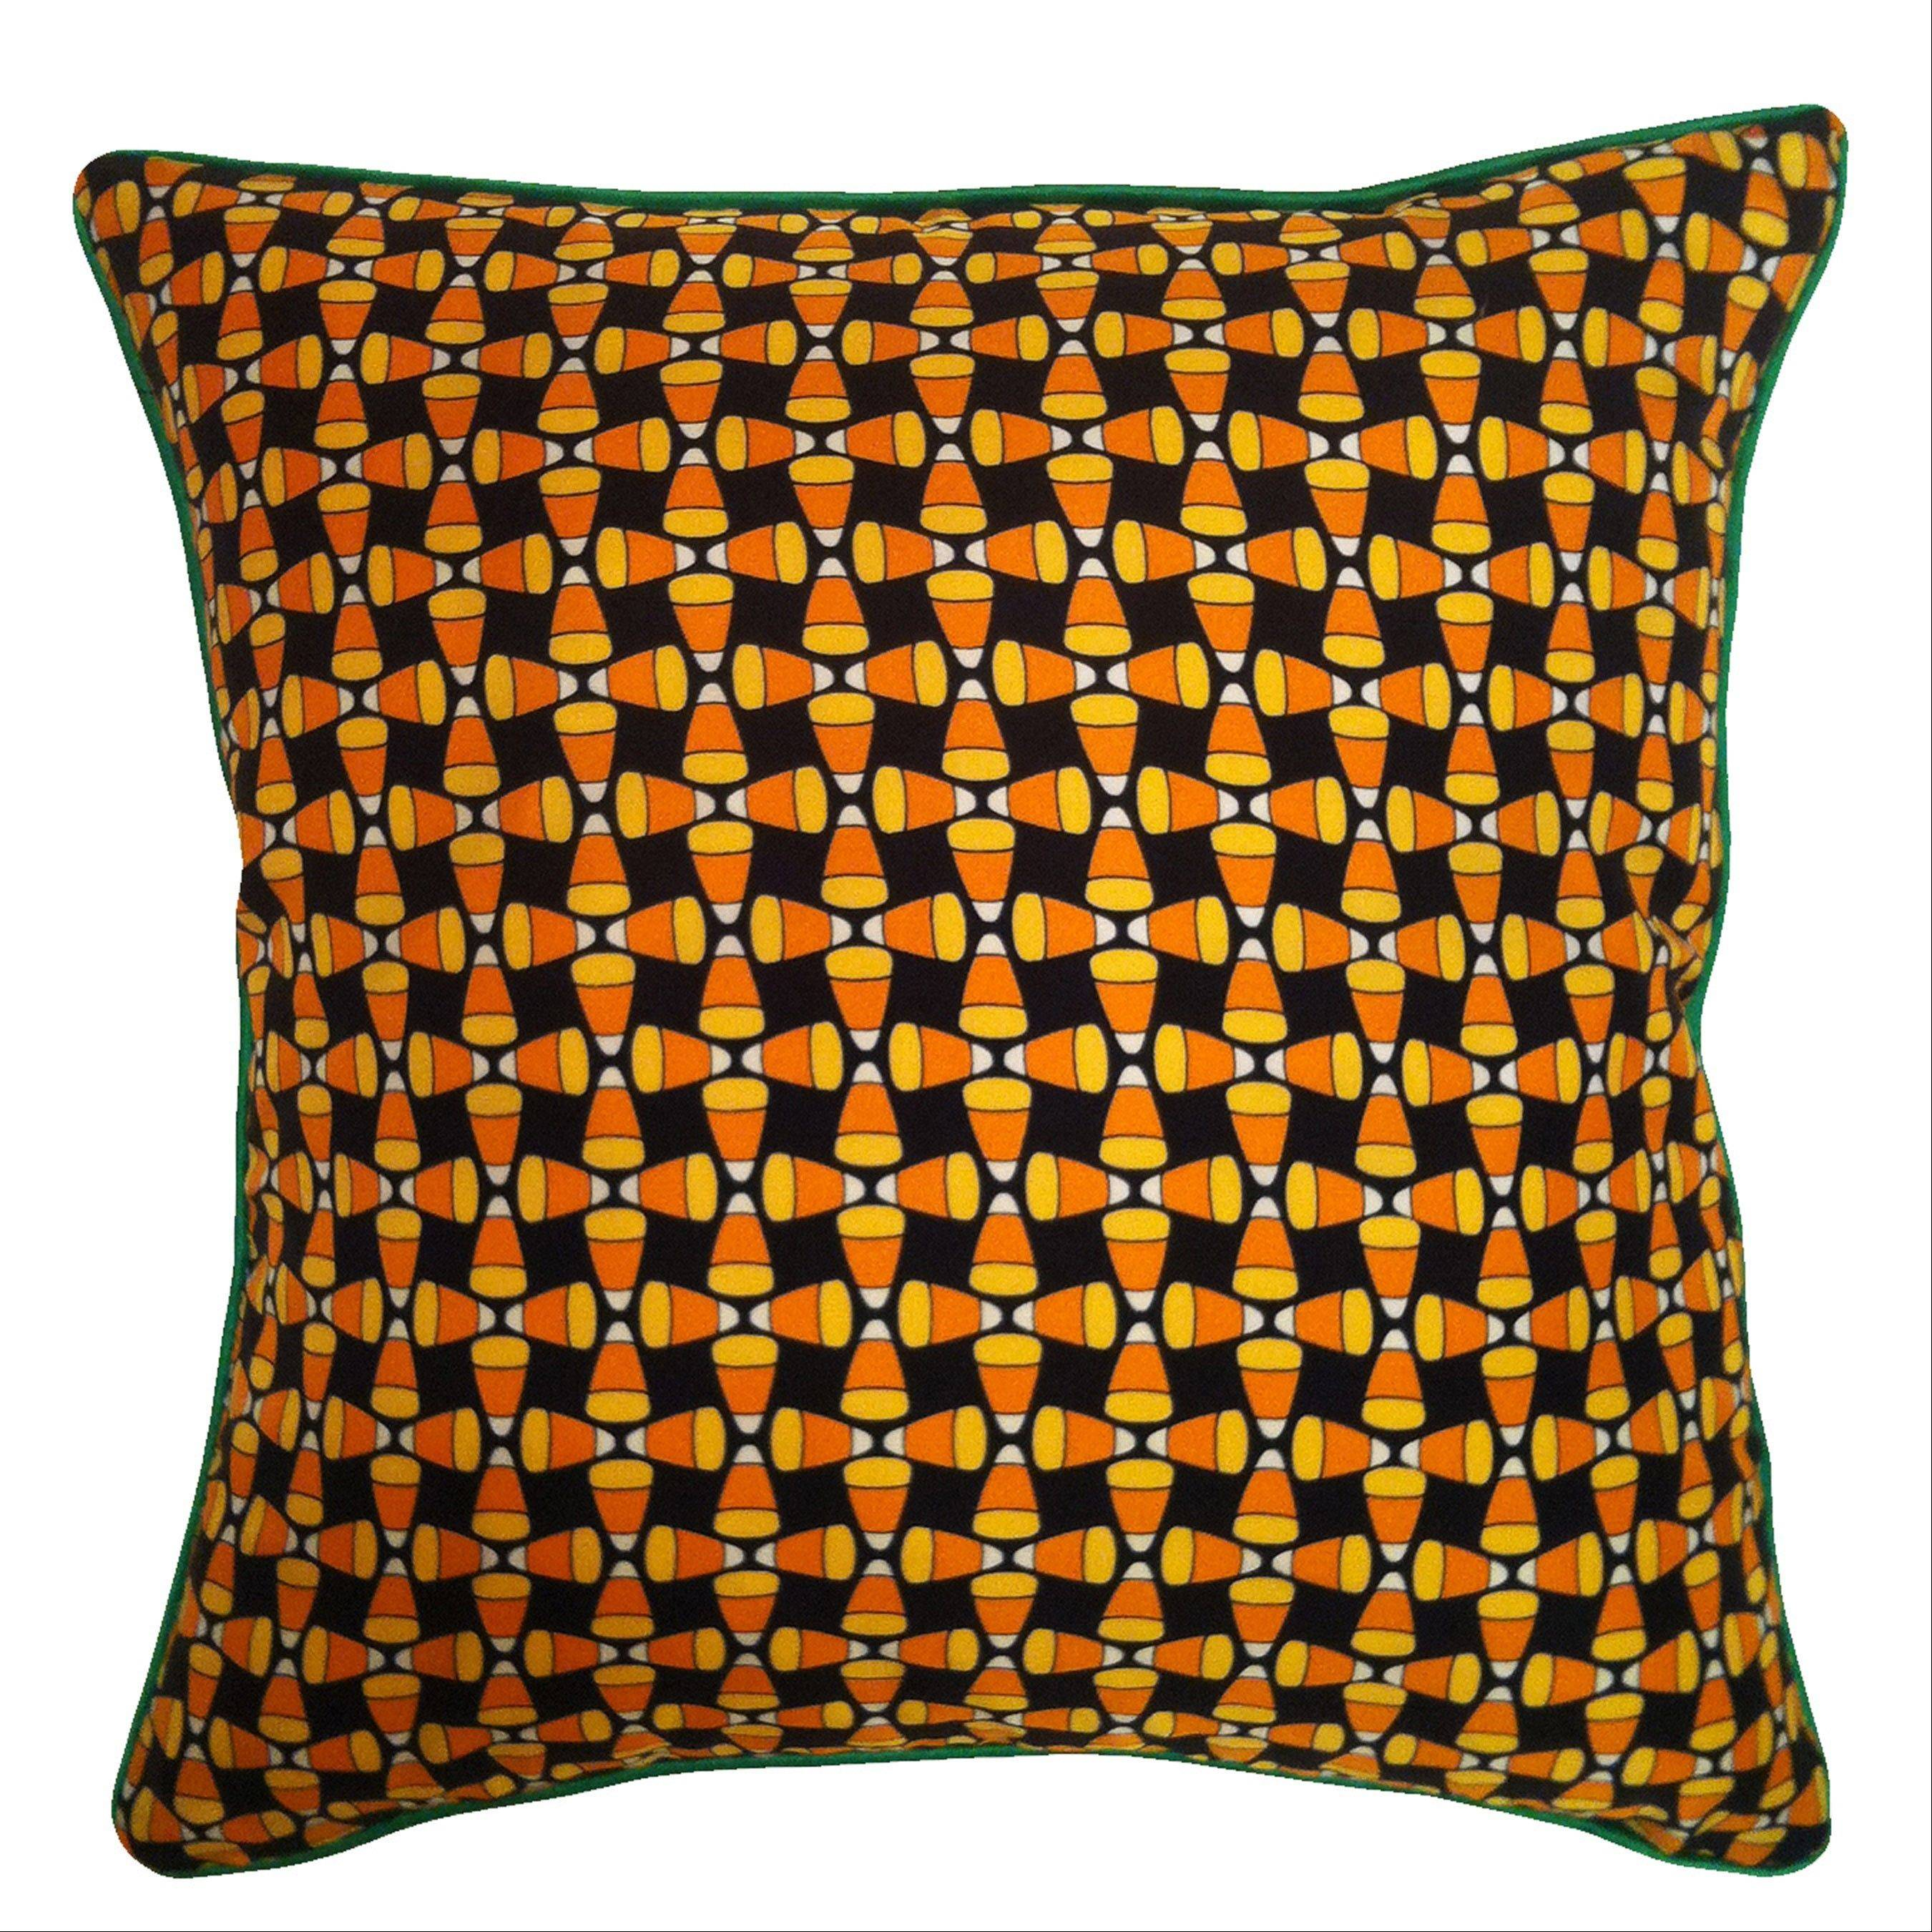 A silk pillow ($115) with a candy corn print showcases Halloween as seasonal decor.